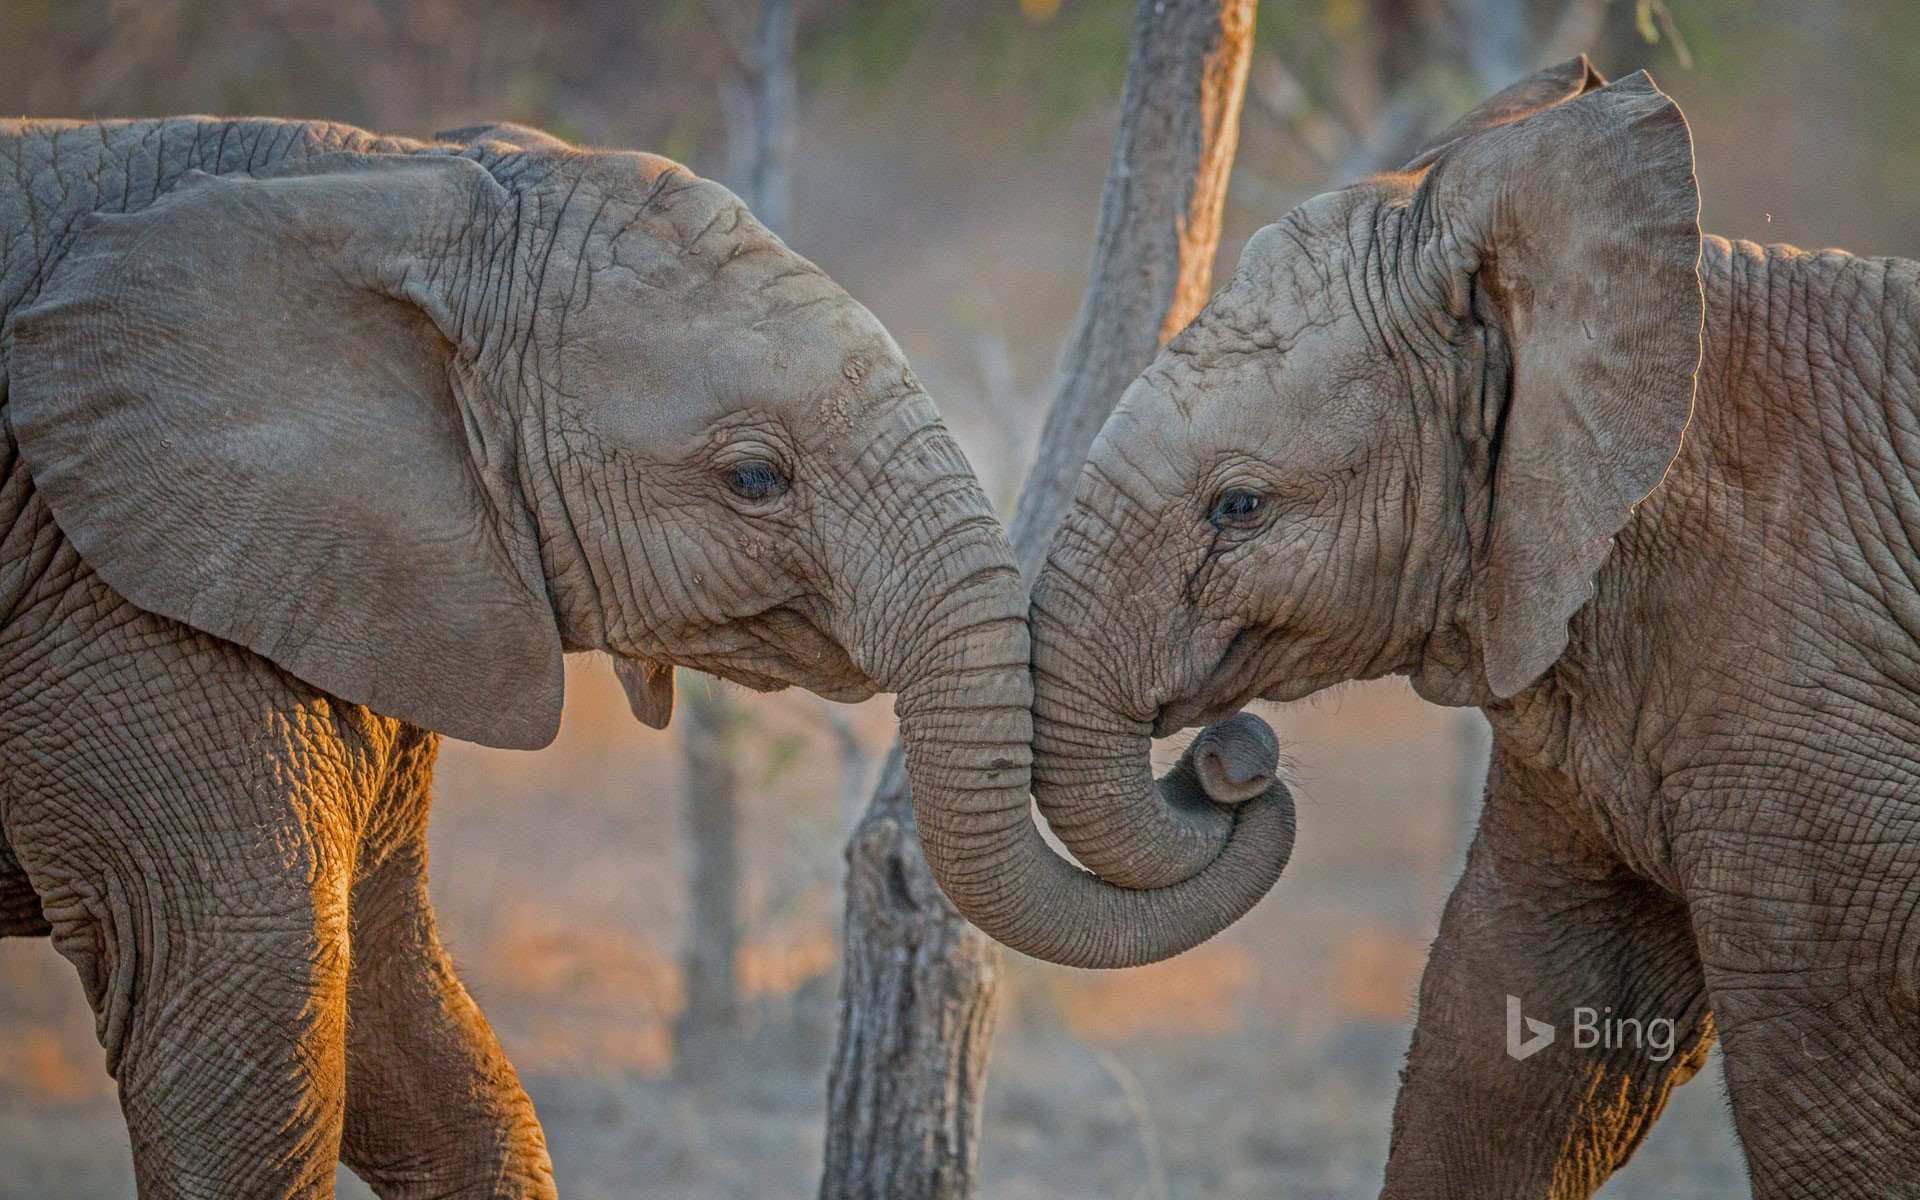 Elephants at Kapama Private Game Reserve in South Africa